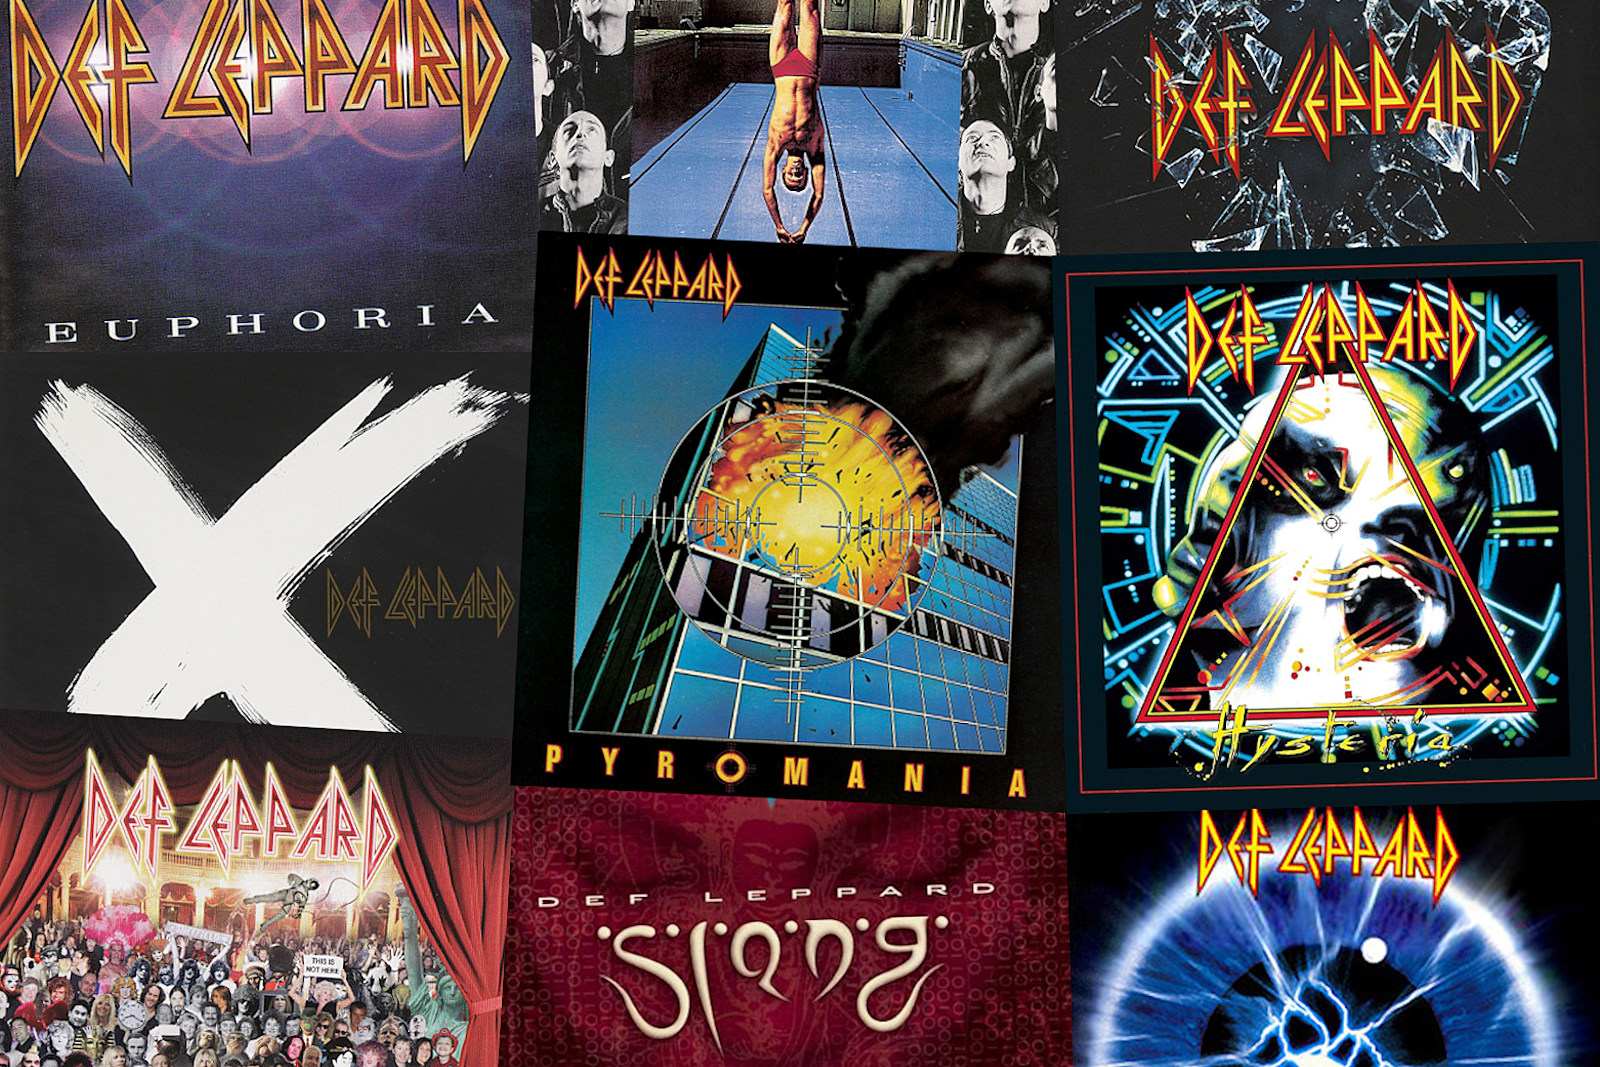 Underrated Def Leppard: The Most Overlooked Song From Each Album